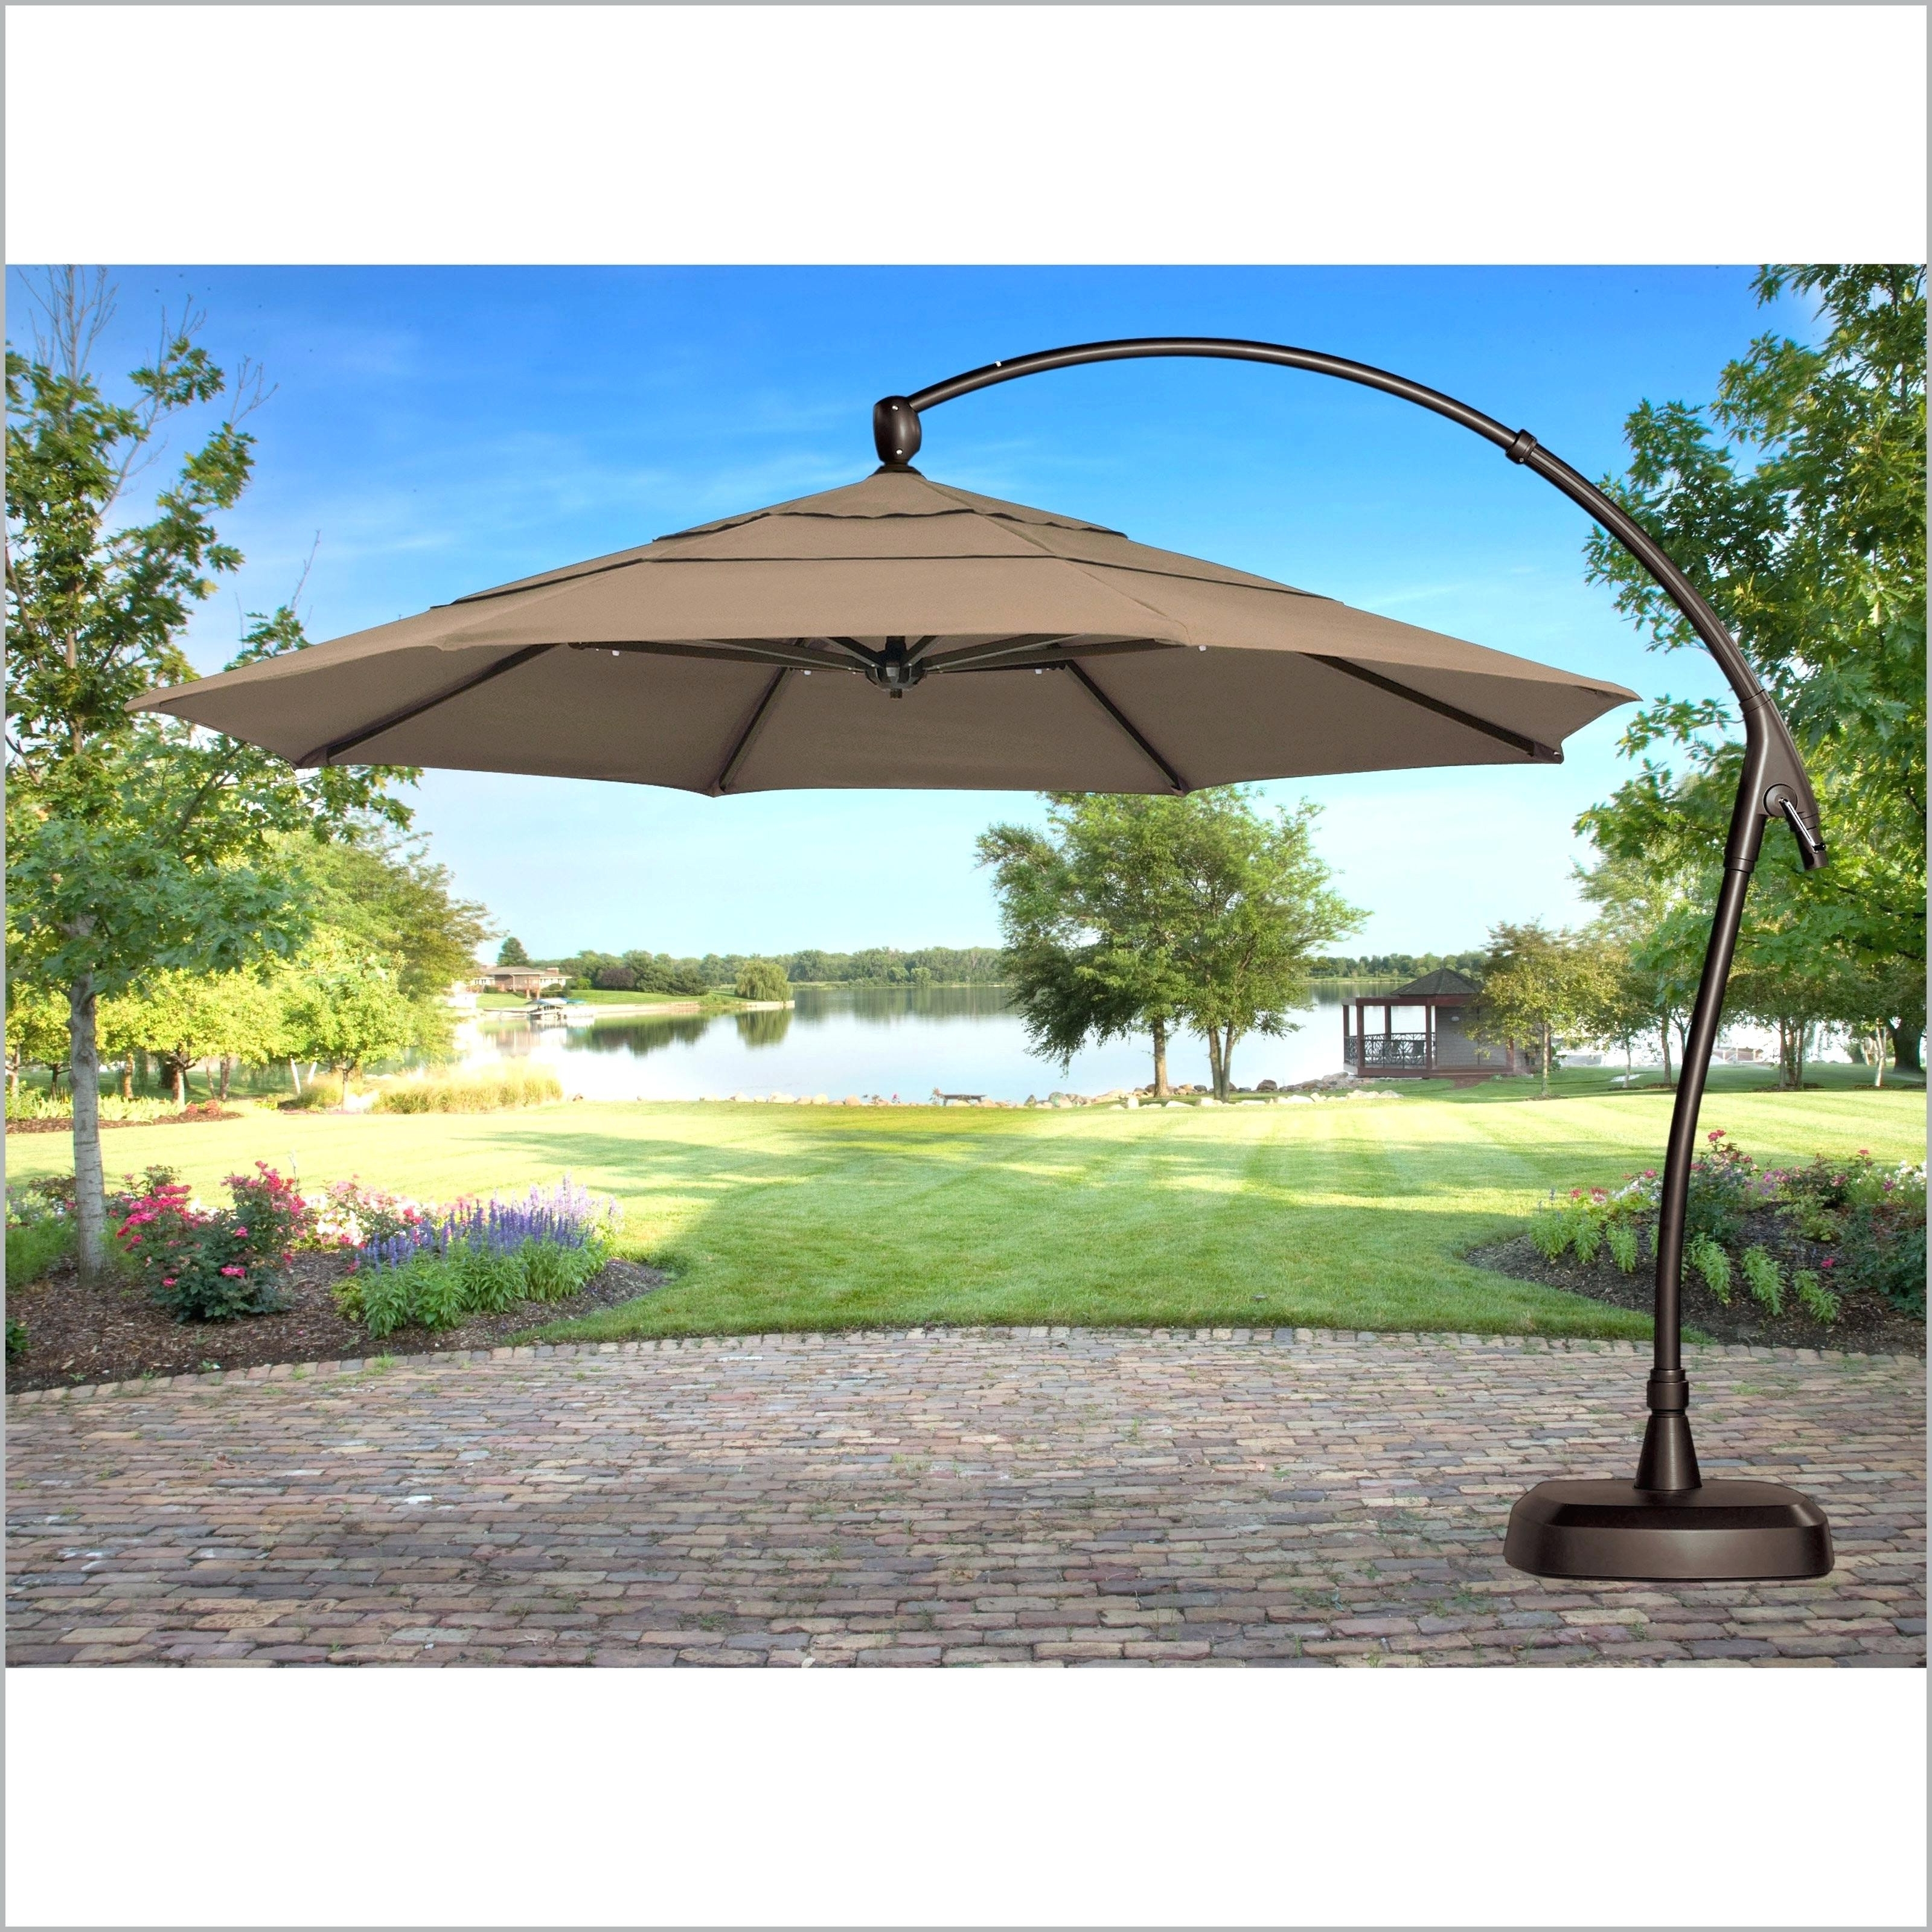 Current Lowes Umbrella Base Patio Umbrellas With Lights Table Pics – Mrze Within Patio Umbrellas At Lowes (View 3 of 20)